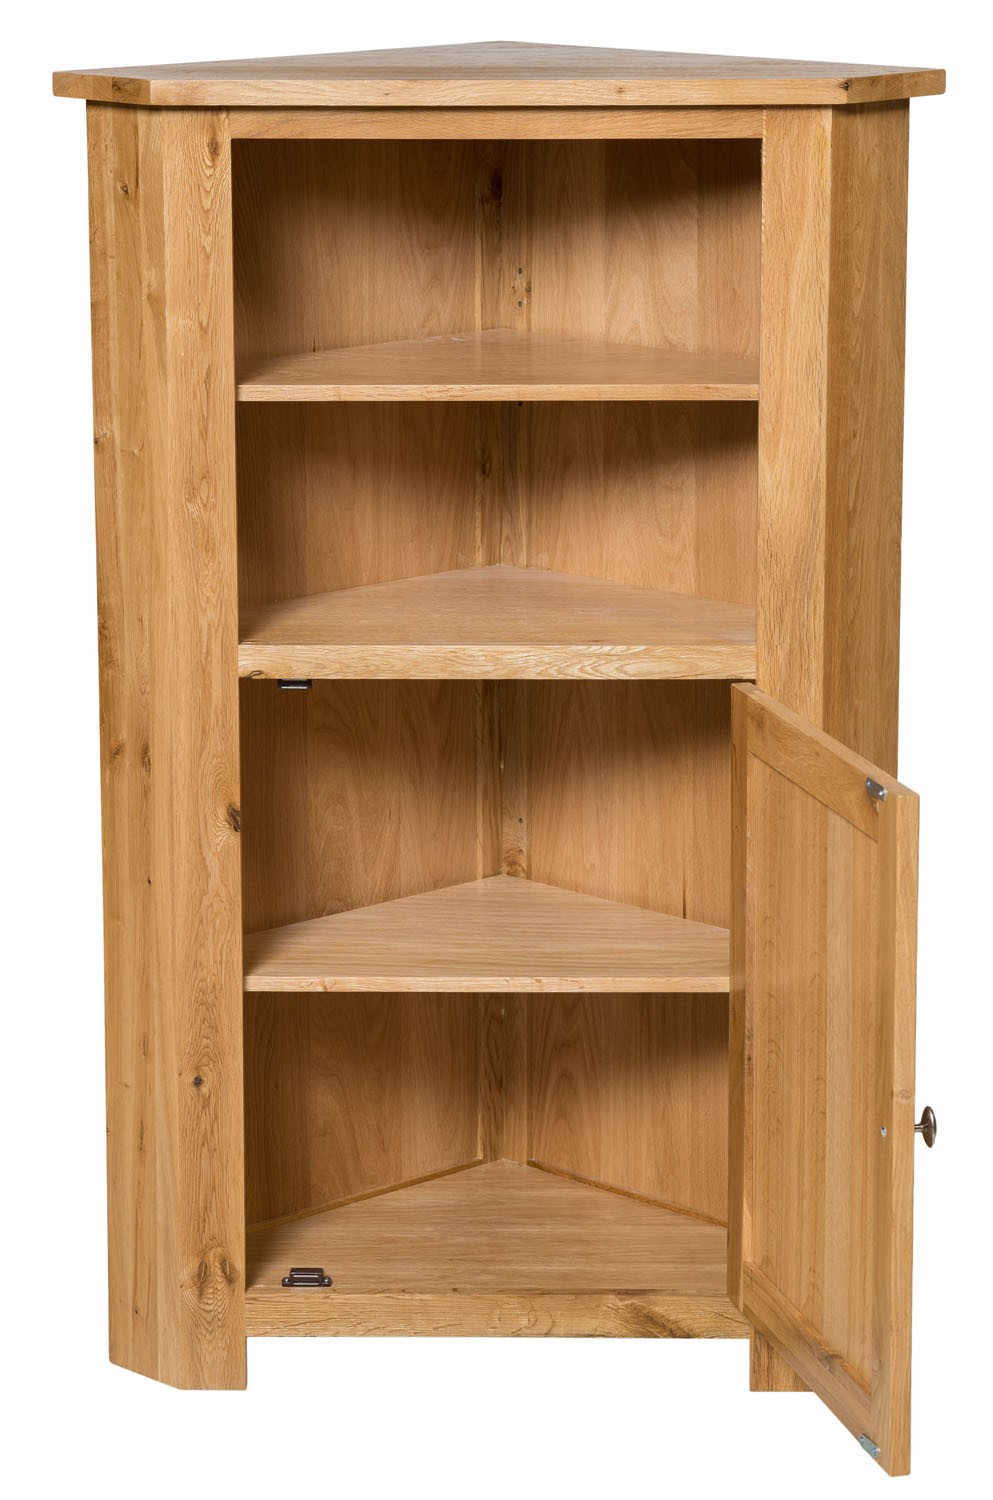 Small But Wide Storage Cupboard With Flexible Storage